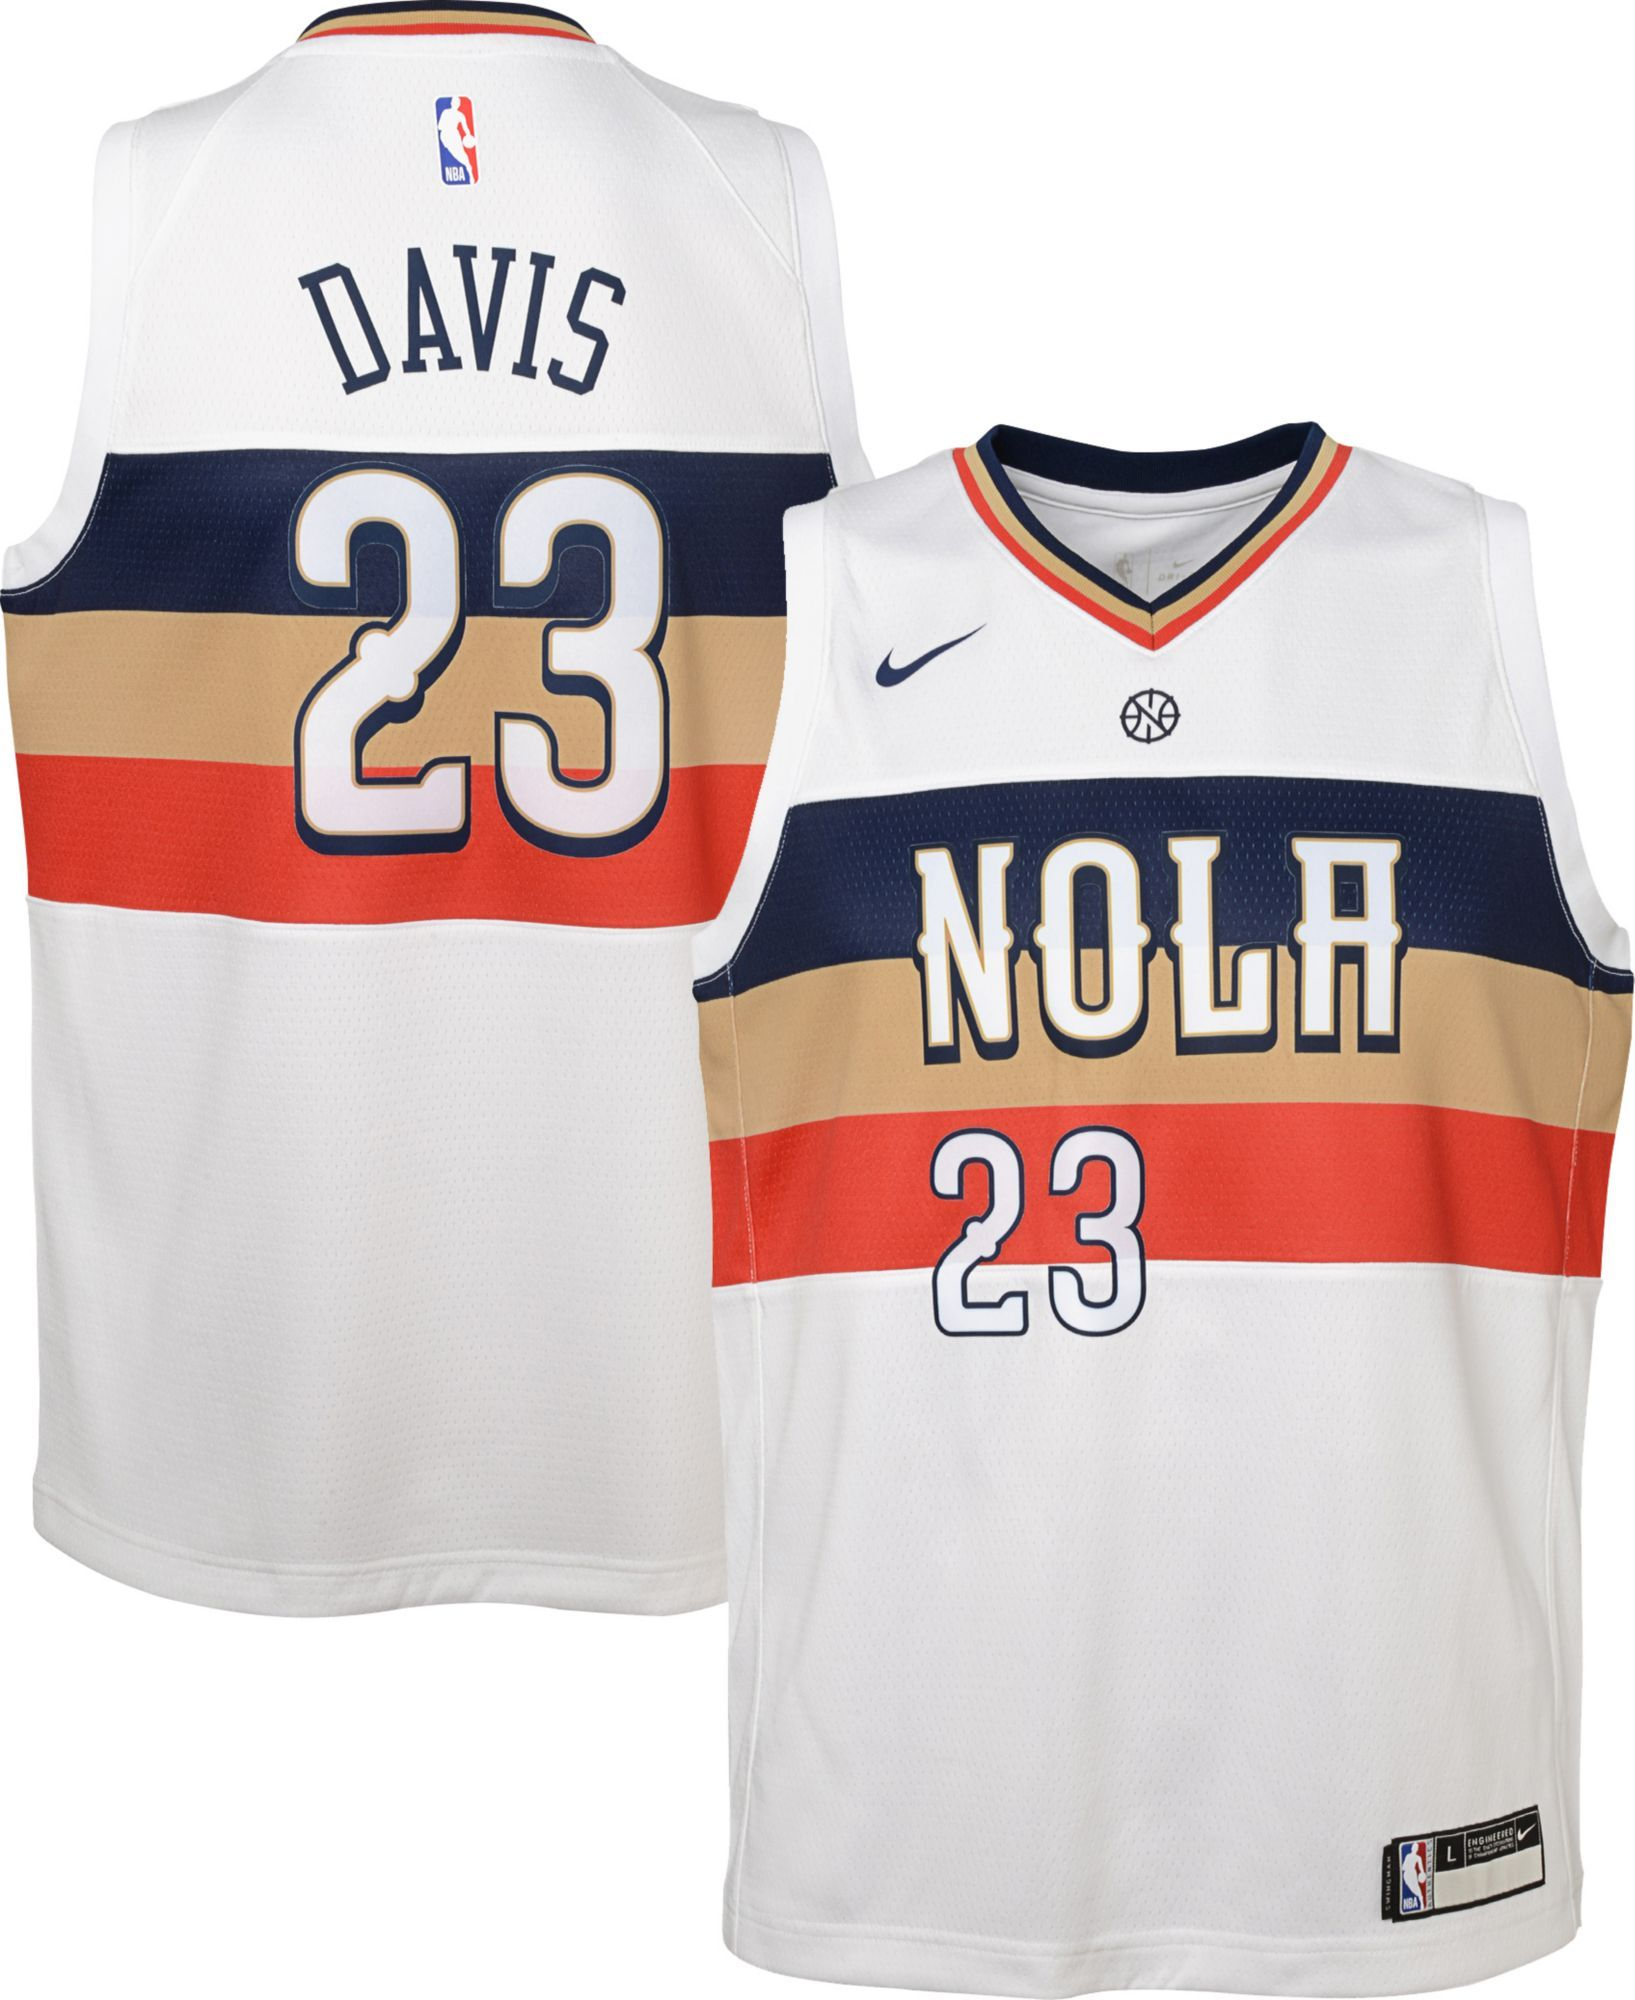 960ef54cd60 Nike Youth New Orleans Pelicans Anthony Davis Dri-FIT Earned Edition  Swingman Jersey, White